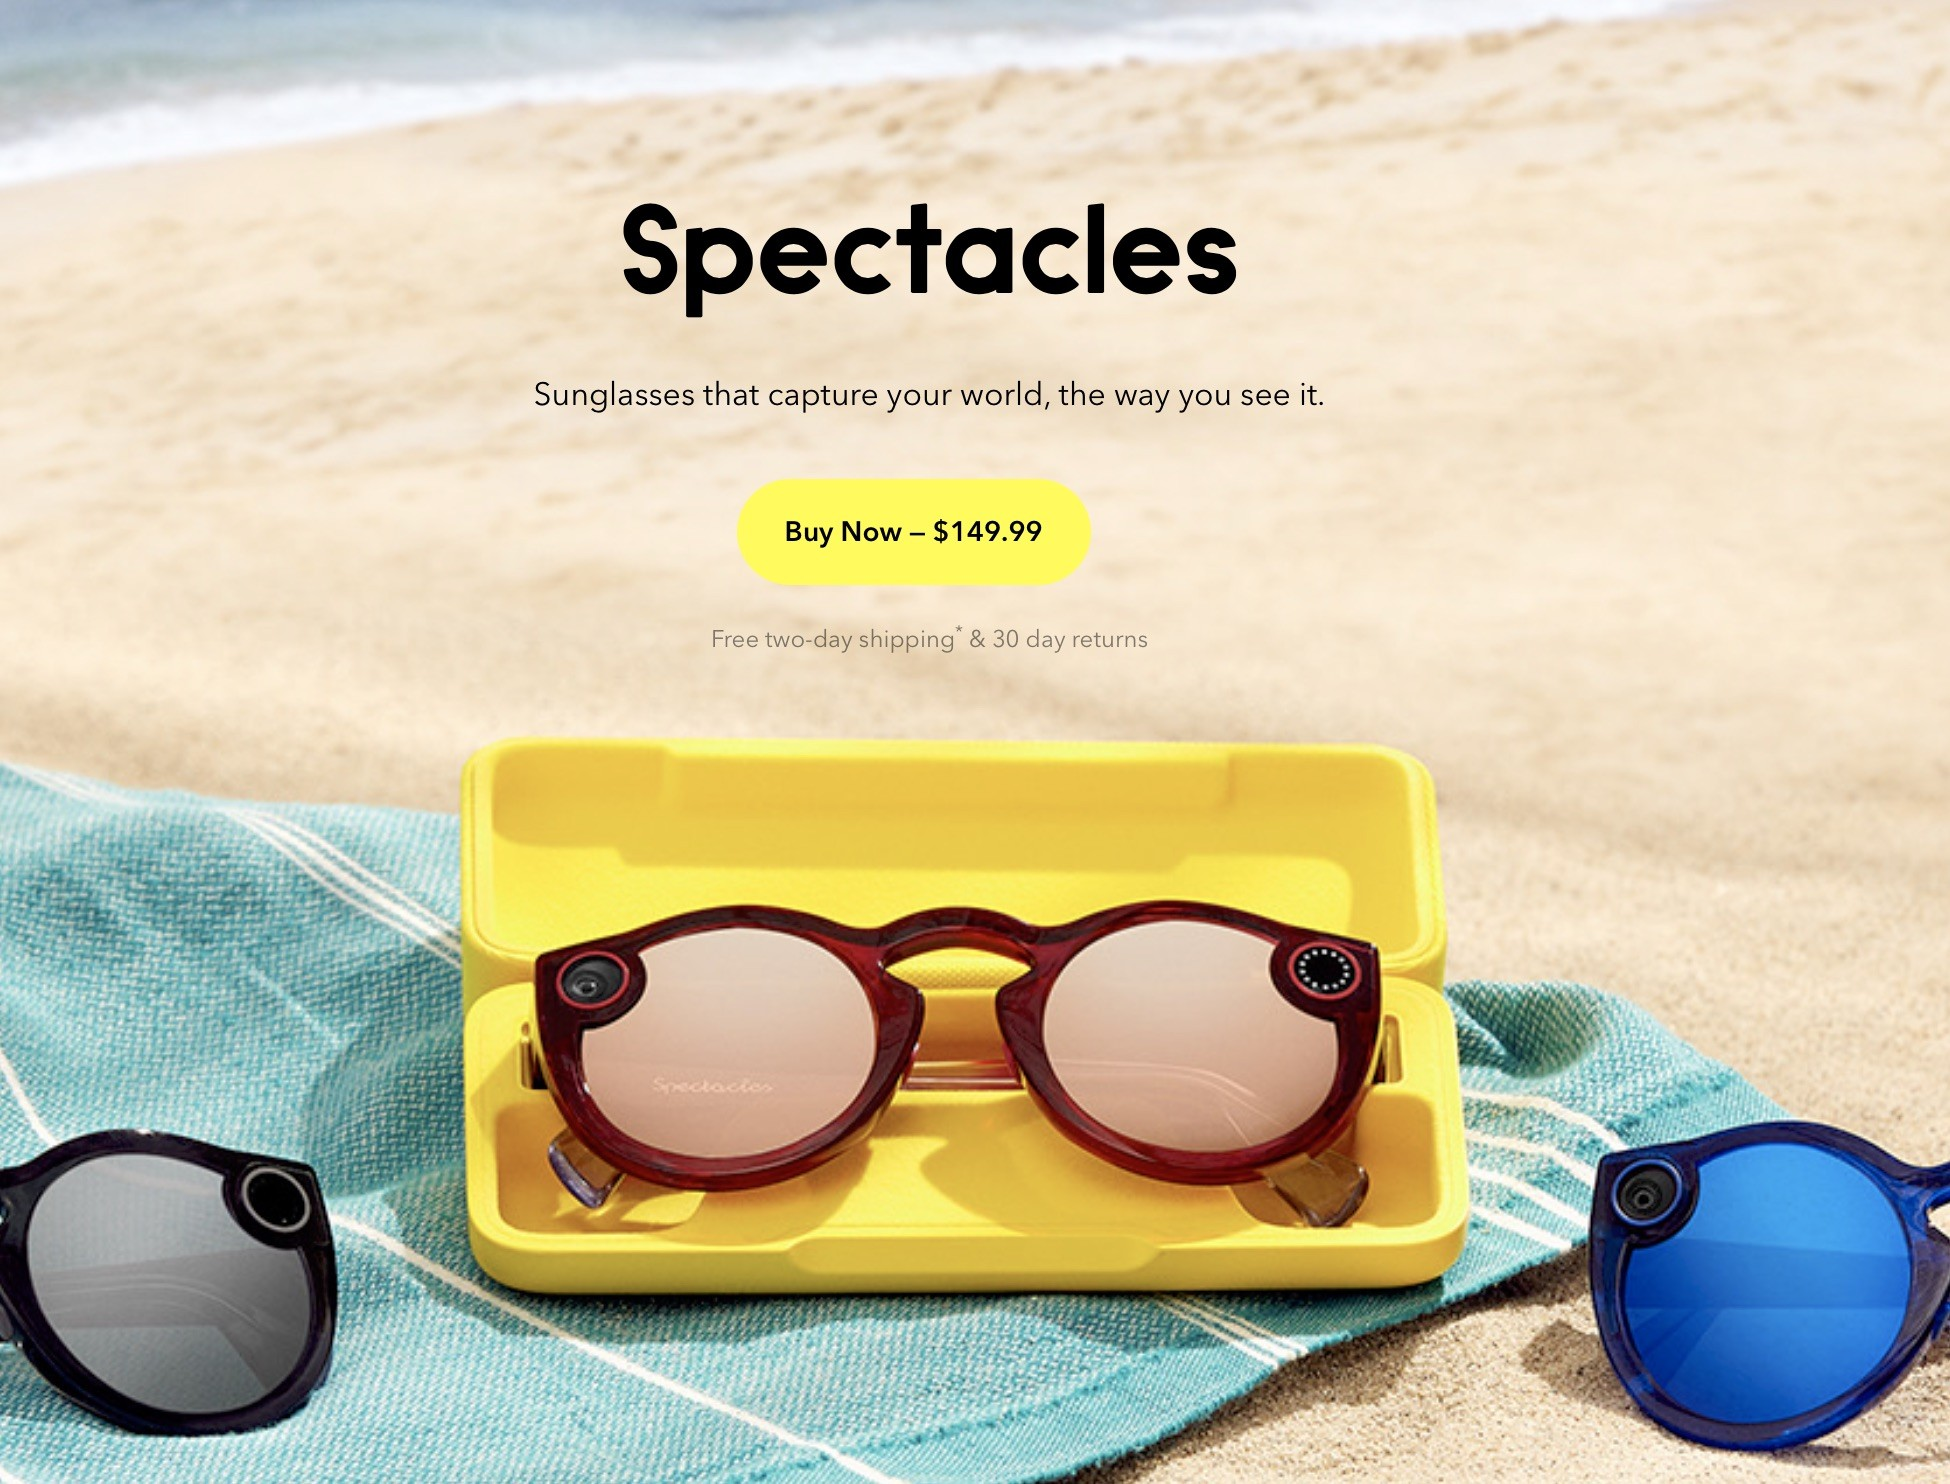 e4533ab92b Built to wear them as your everyday sunglasses, Snapchat Spectacles 2 comes  with a built-in camera that lets you take photos wherever you go and record  ...